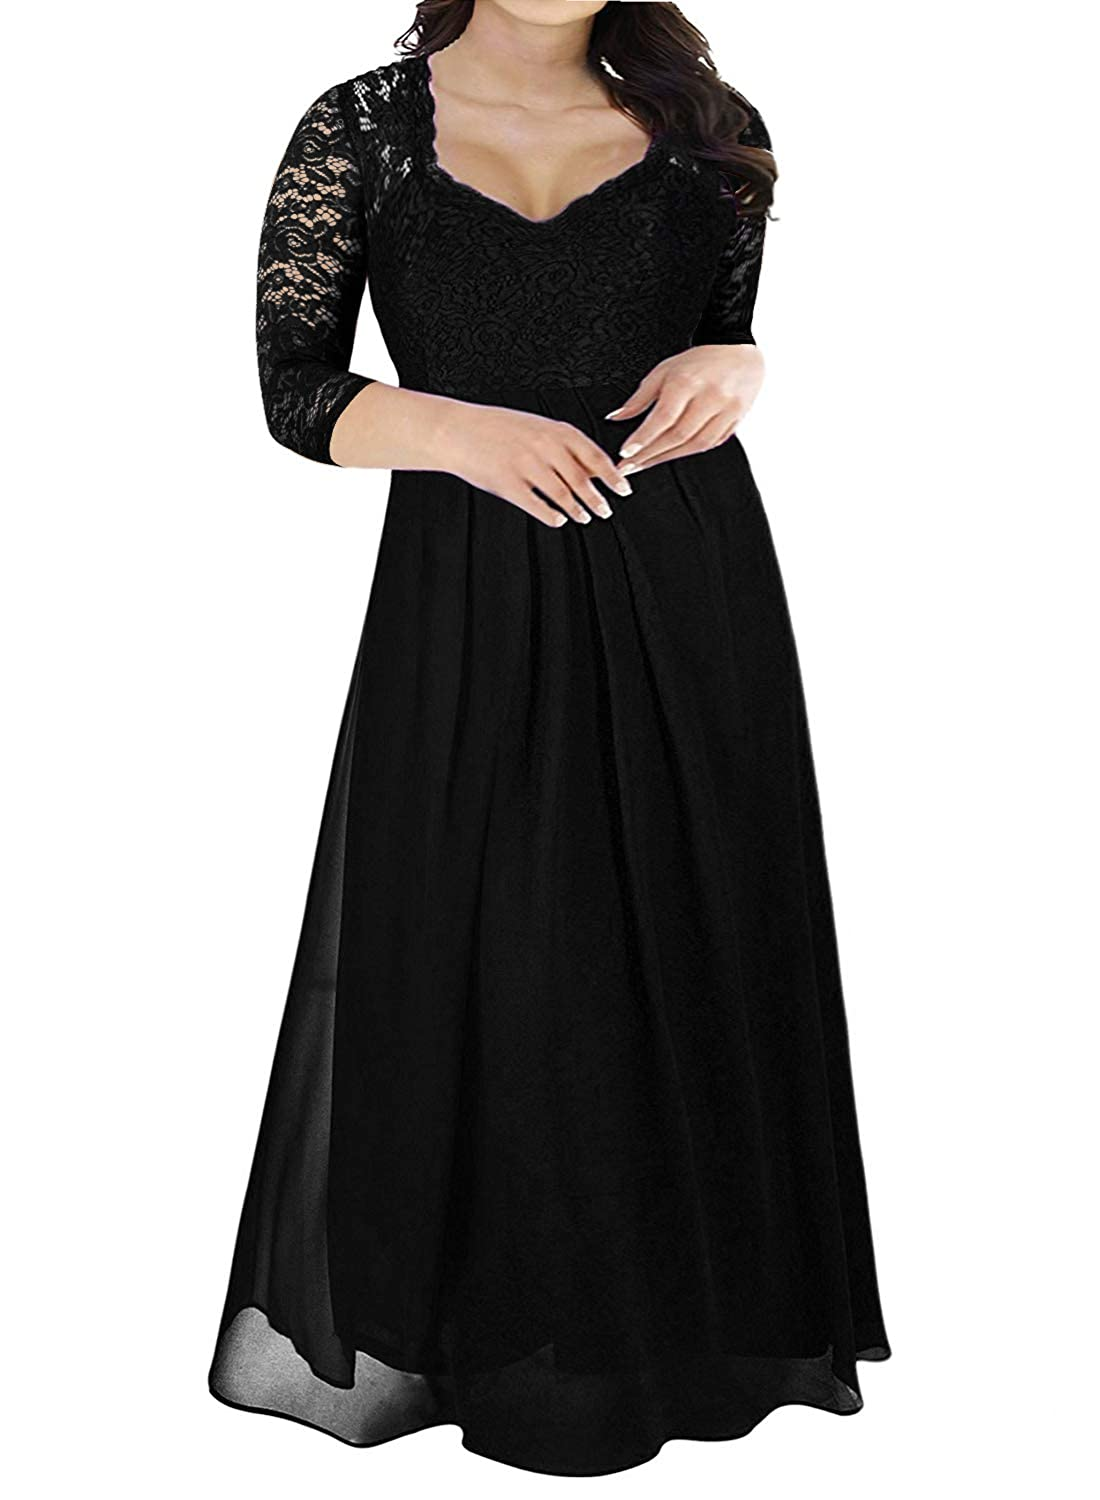 Nemidor Women's Deep-V Neck 3/4 Sleeve Vintage Plus Size Bridesmaid Formal Maxi Dress